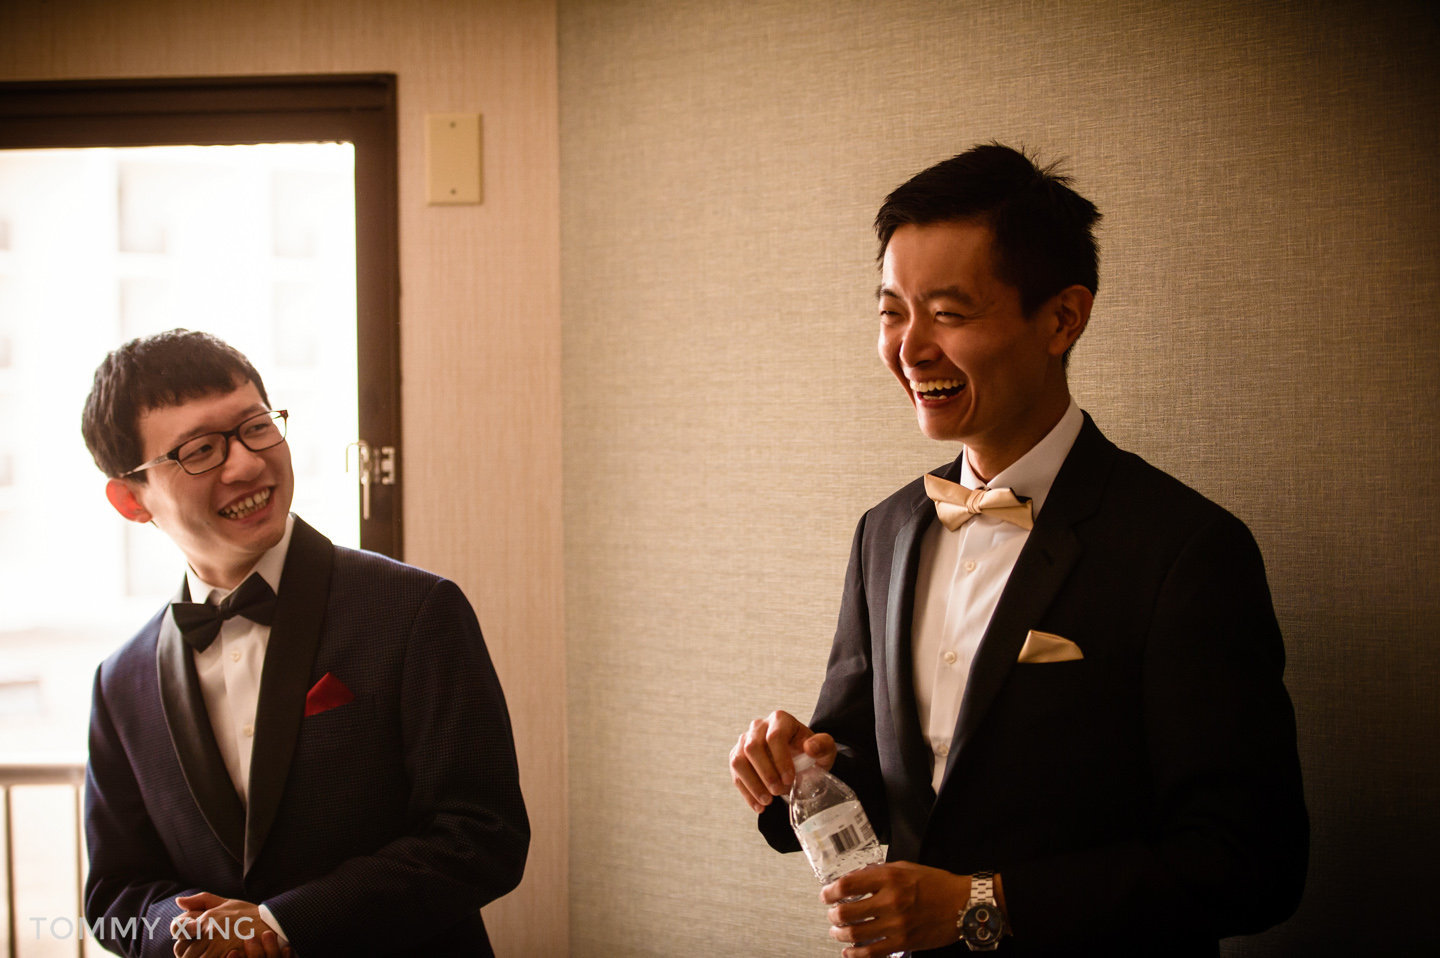 Los Angeles Wedding Photographer 洛杉矶婚礼婚纱摄影师 Tommy Xing-36.JPG